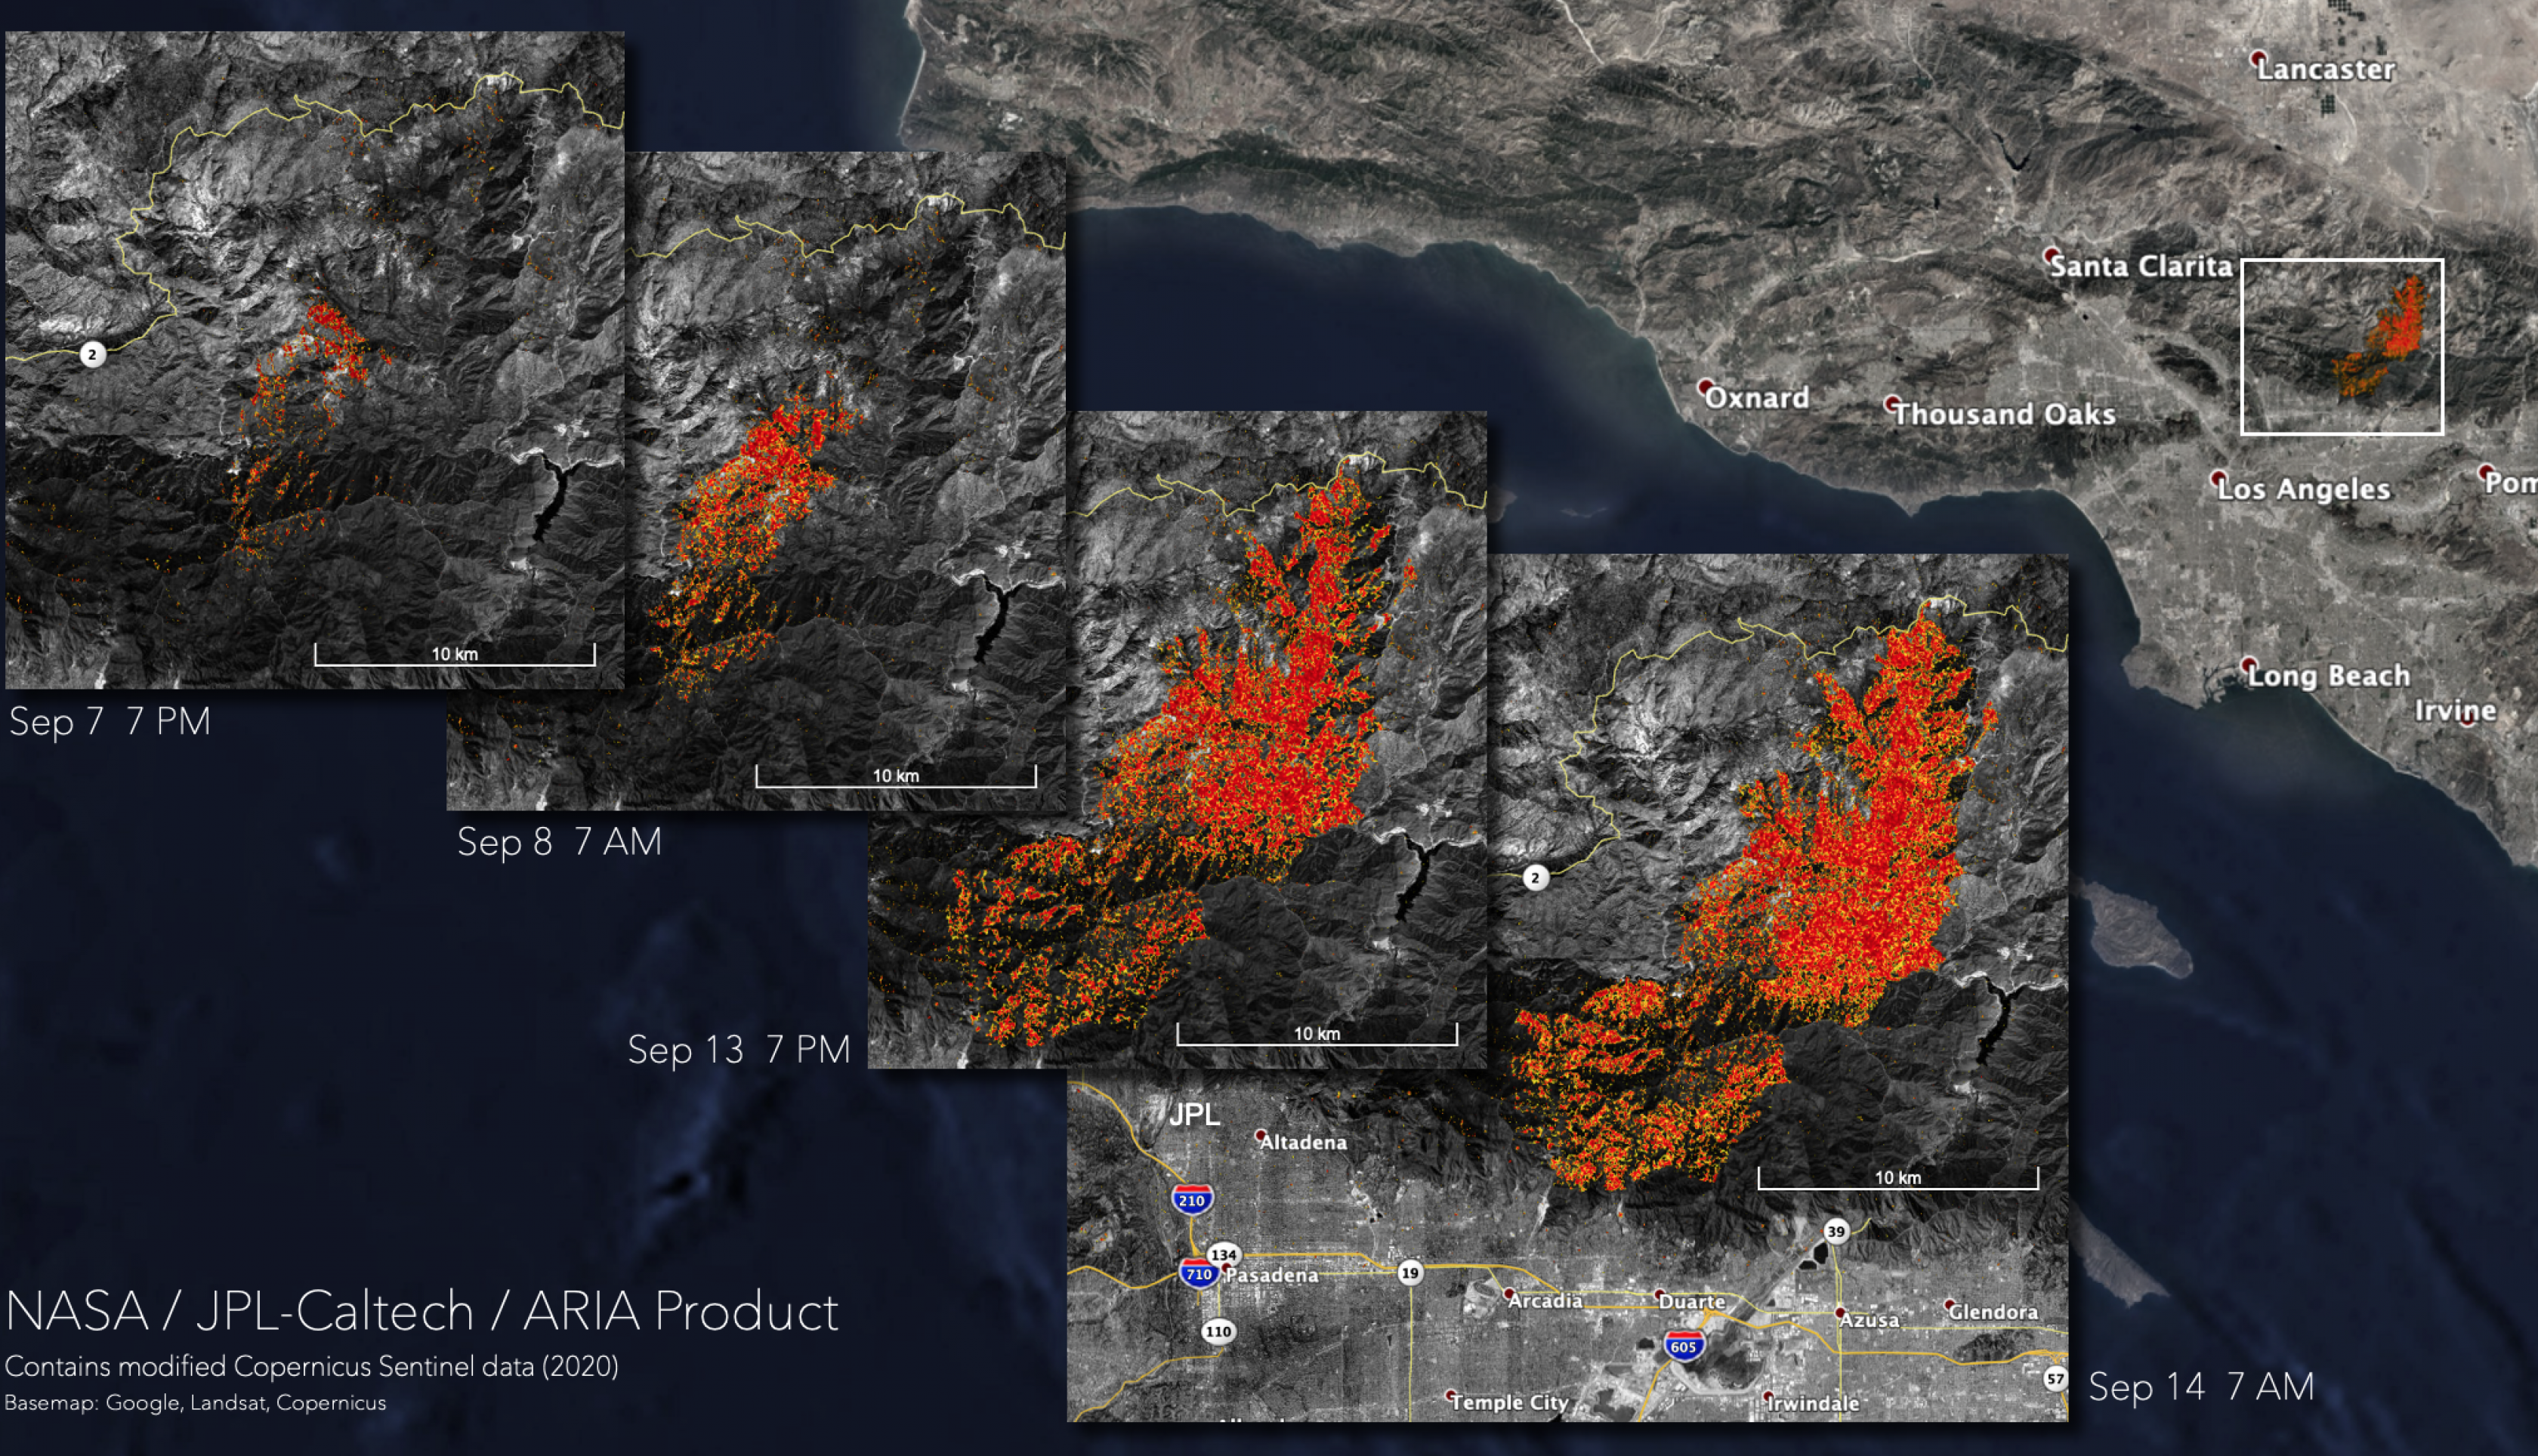 Map showing likely damaged areas in Angeles National Forest on September 7th, 8th, 13th, and 14th.